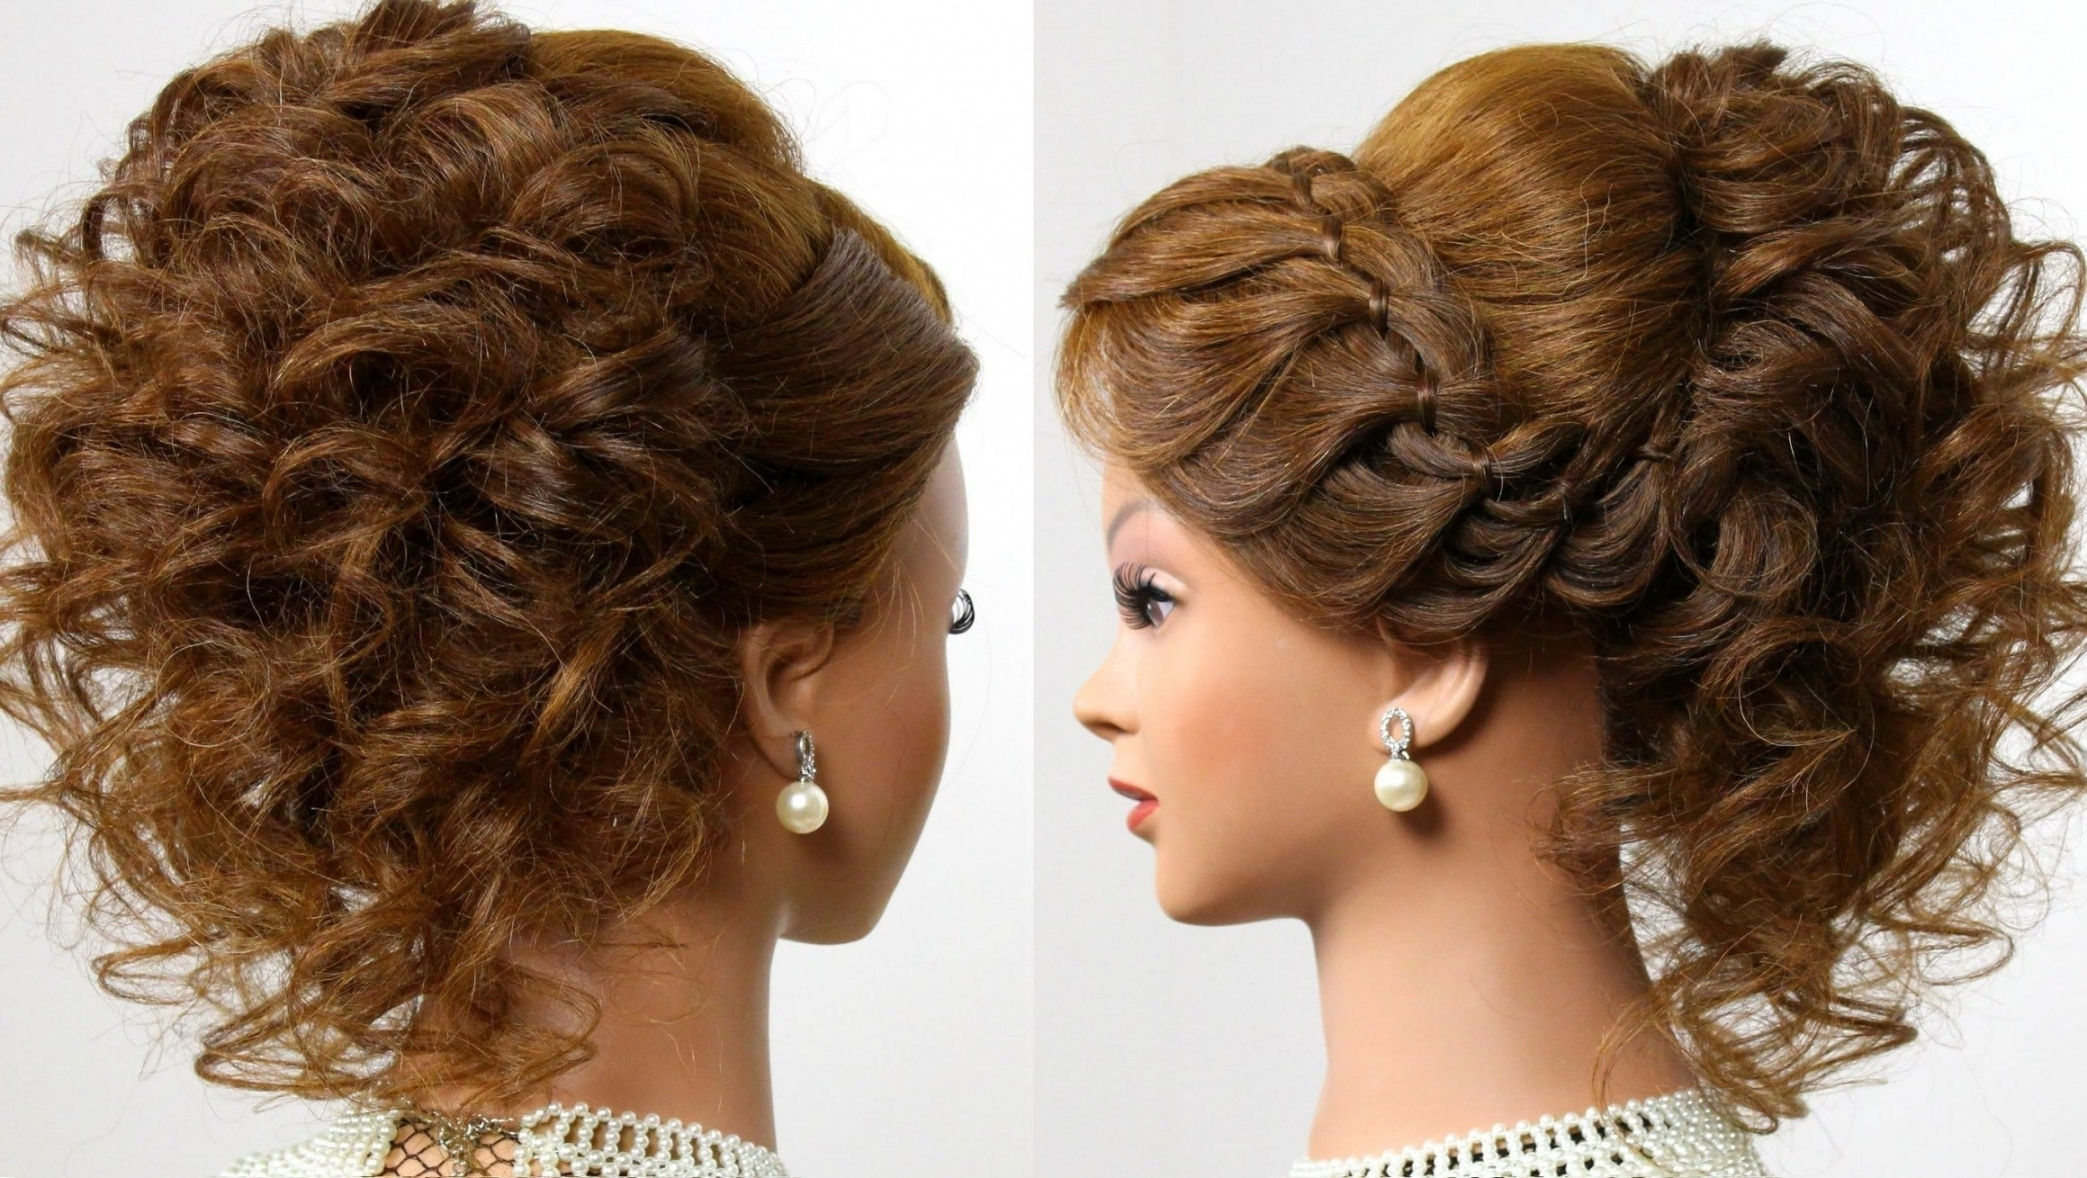 Updo Hairstyles For Curly Hair In Updo Hairstyles For Medium Curly Hair (View 15 of 15)